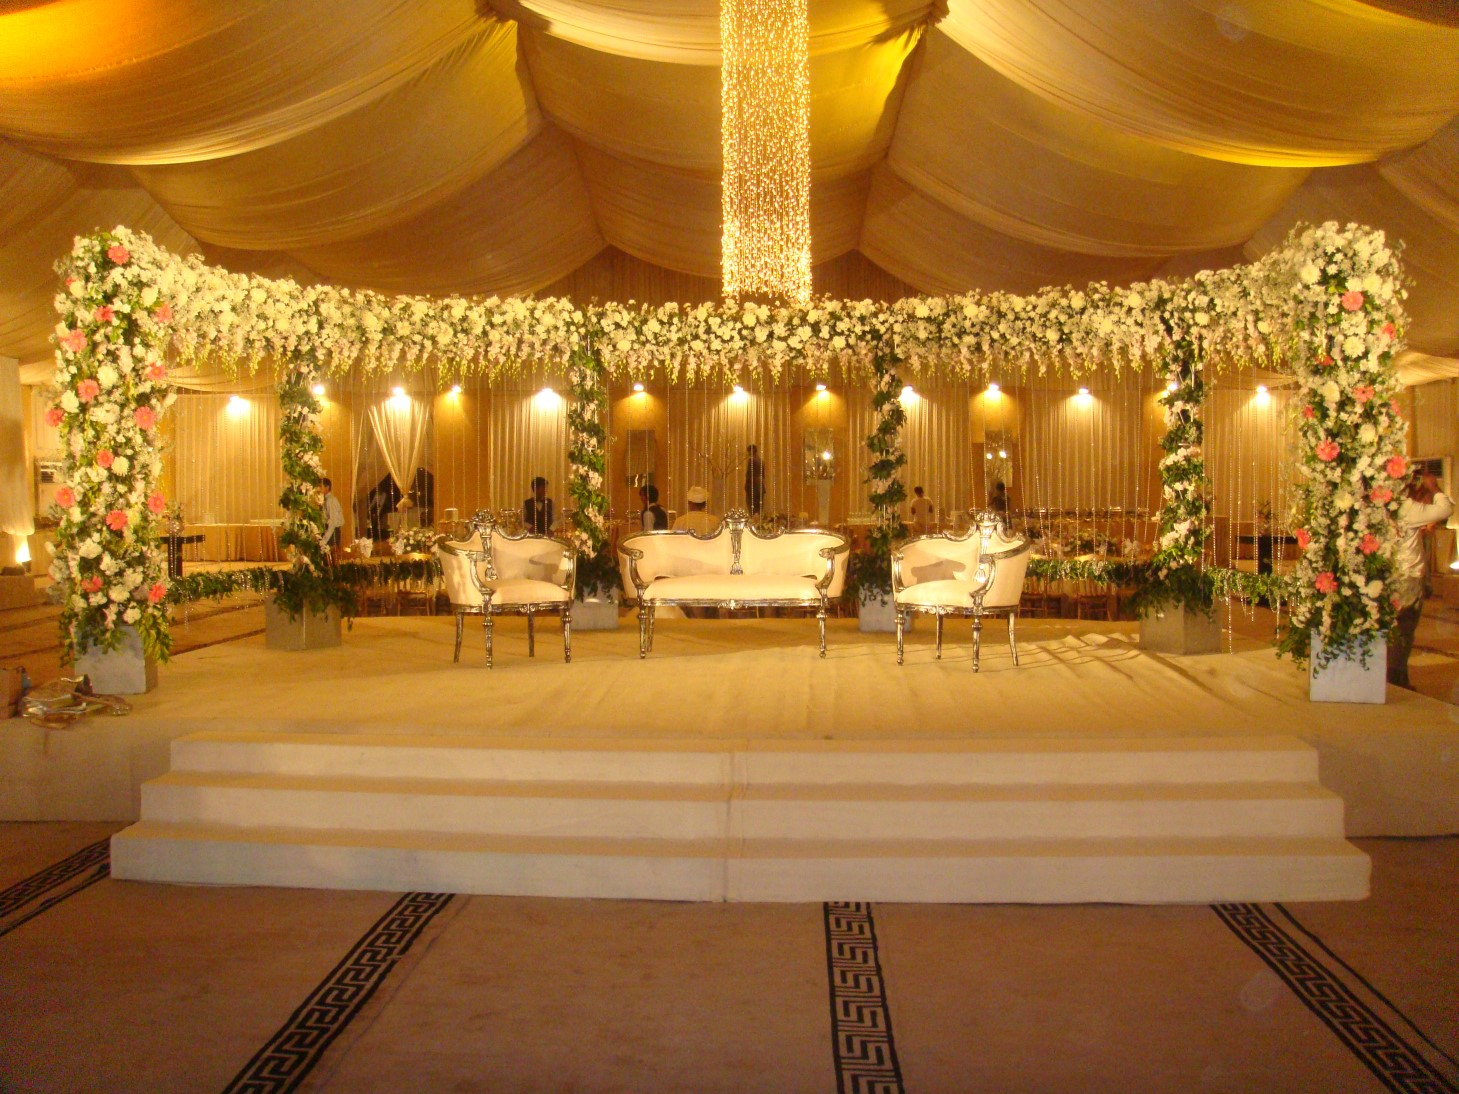 About marriage marriage decoration photos 2013 marriage for Wedding decoration design